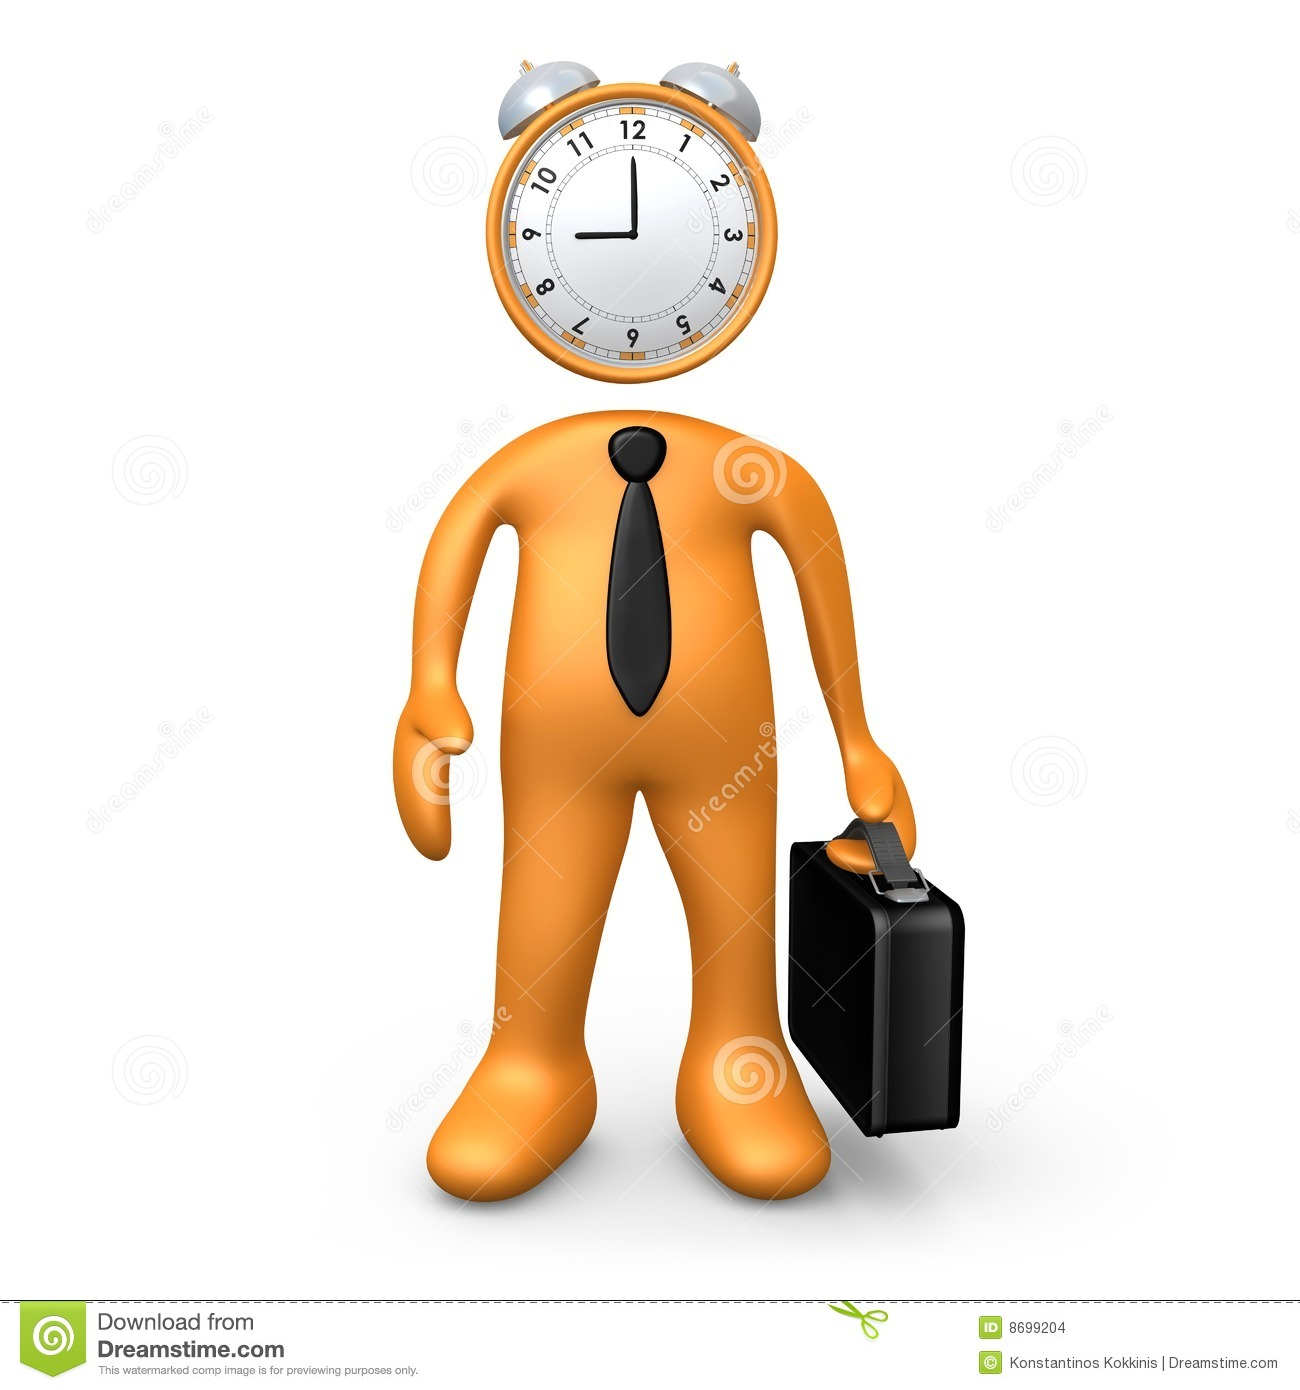 HOW IS WORKING TIME OF WORKERS?